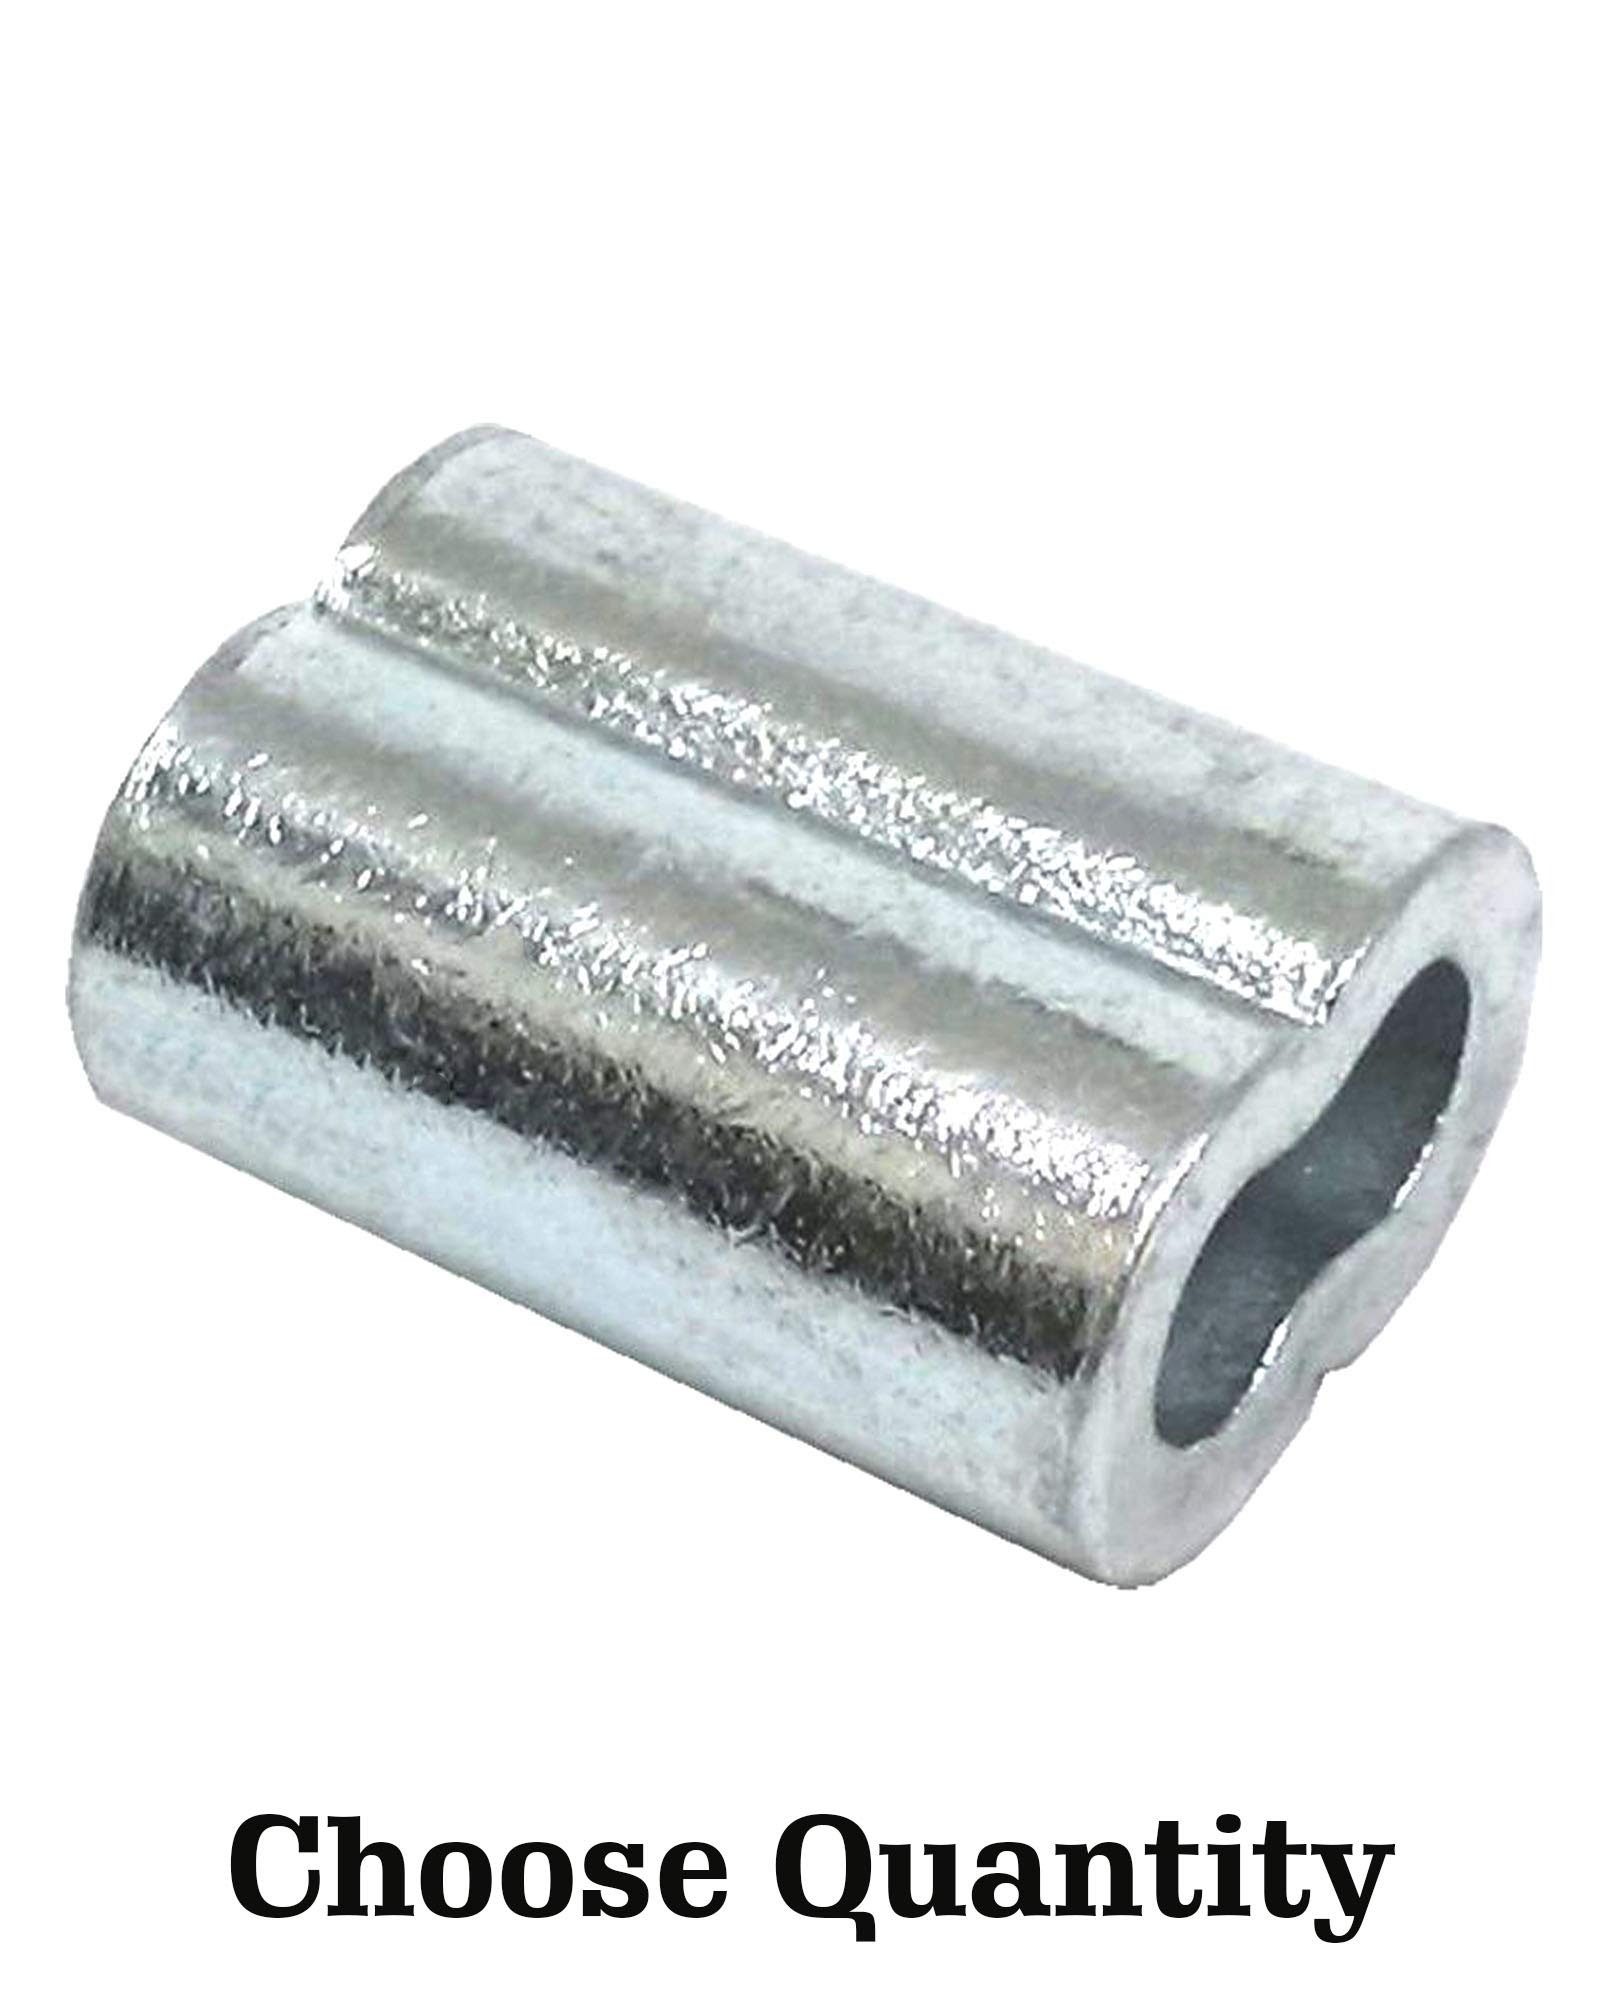 Zinc Plated Copper Swage Sleeves - Crimping Loop Sleeve for 5/32'' Diameter Wire Rope and Cable - Zinc Plated Copper Double Barrel Crimp Sleeves - Zinc Plated Copper Sleeves for Wire